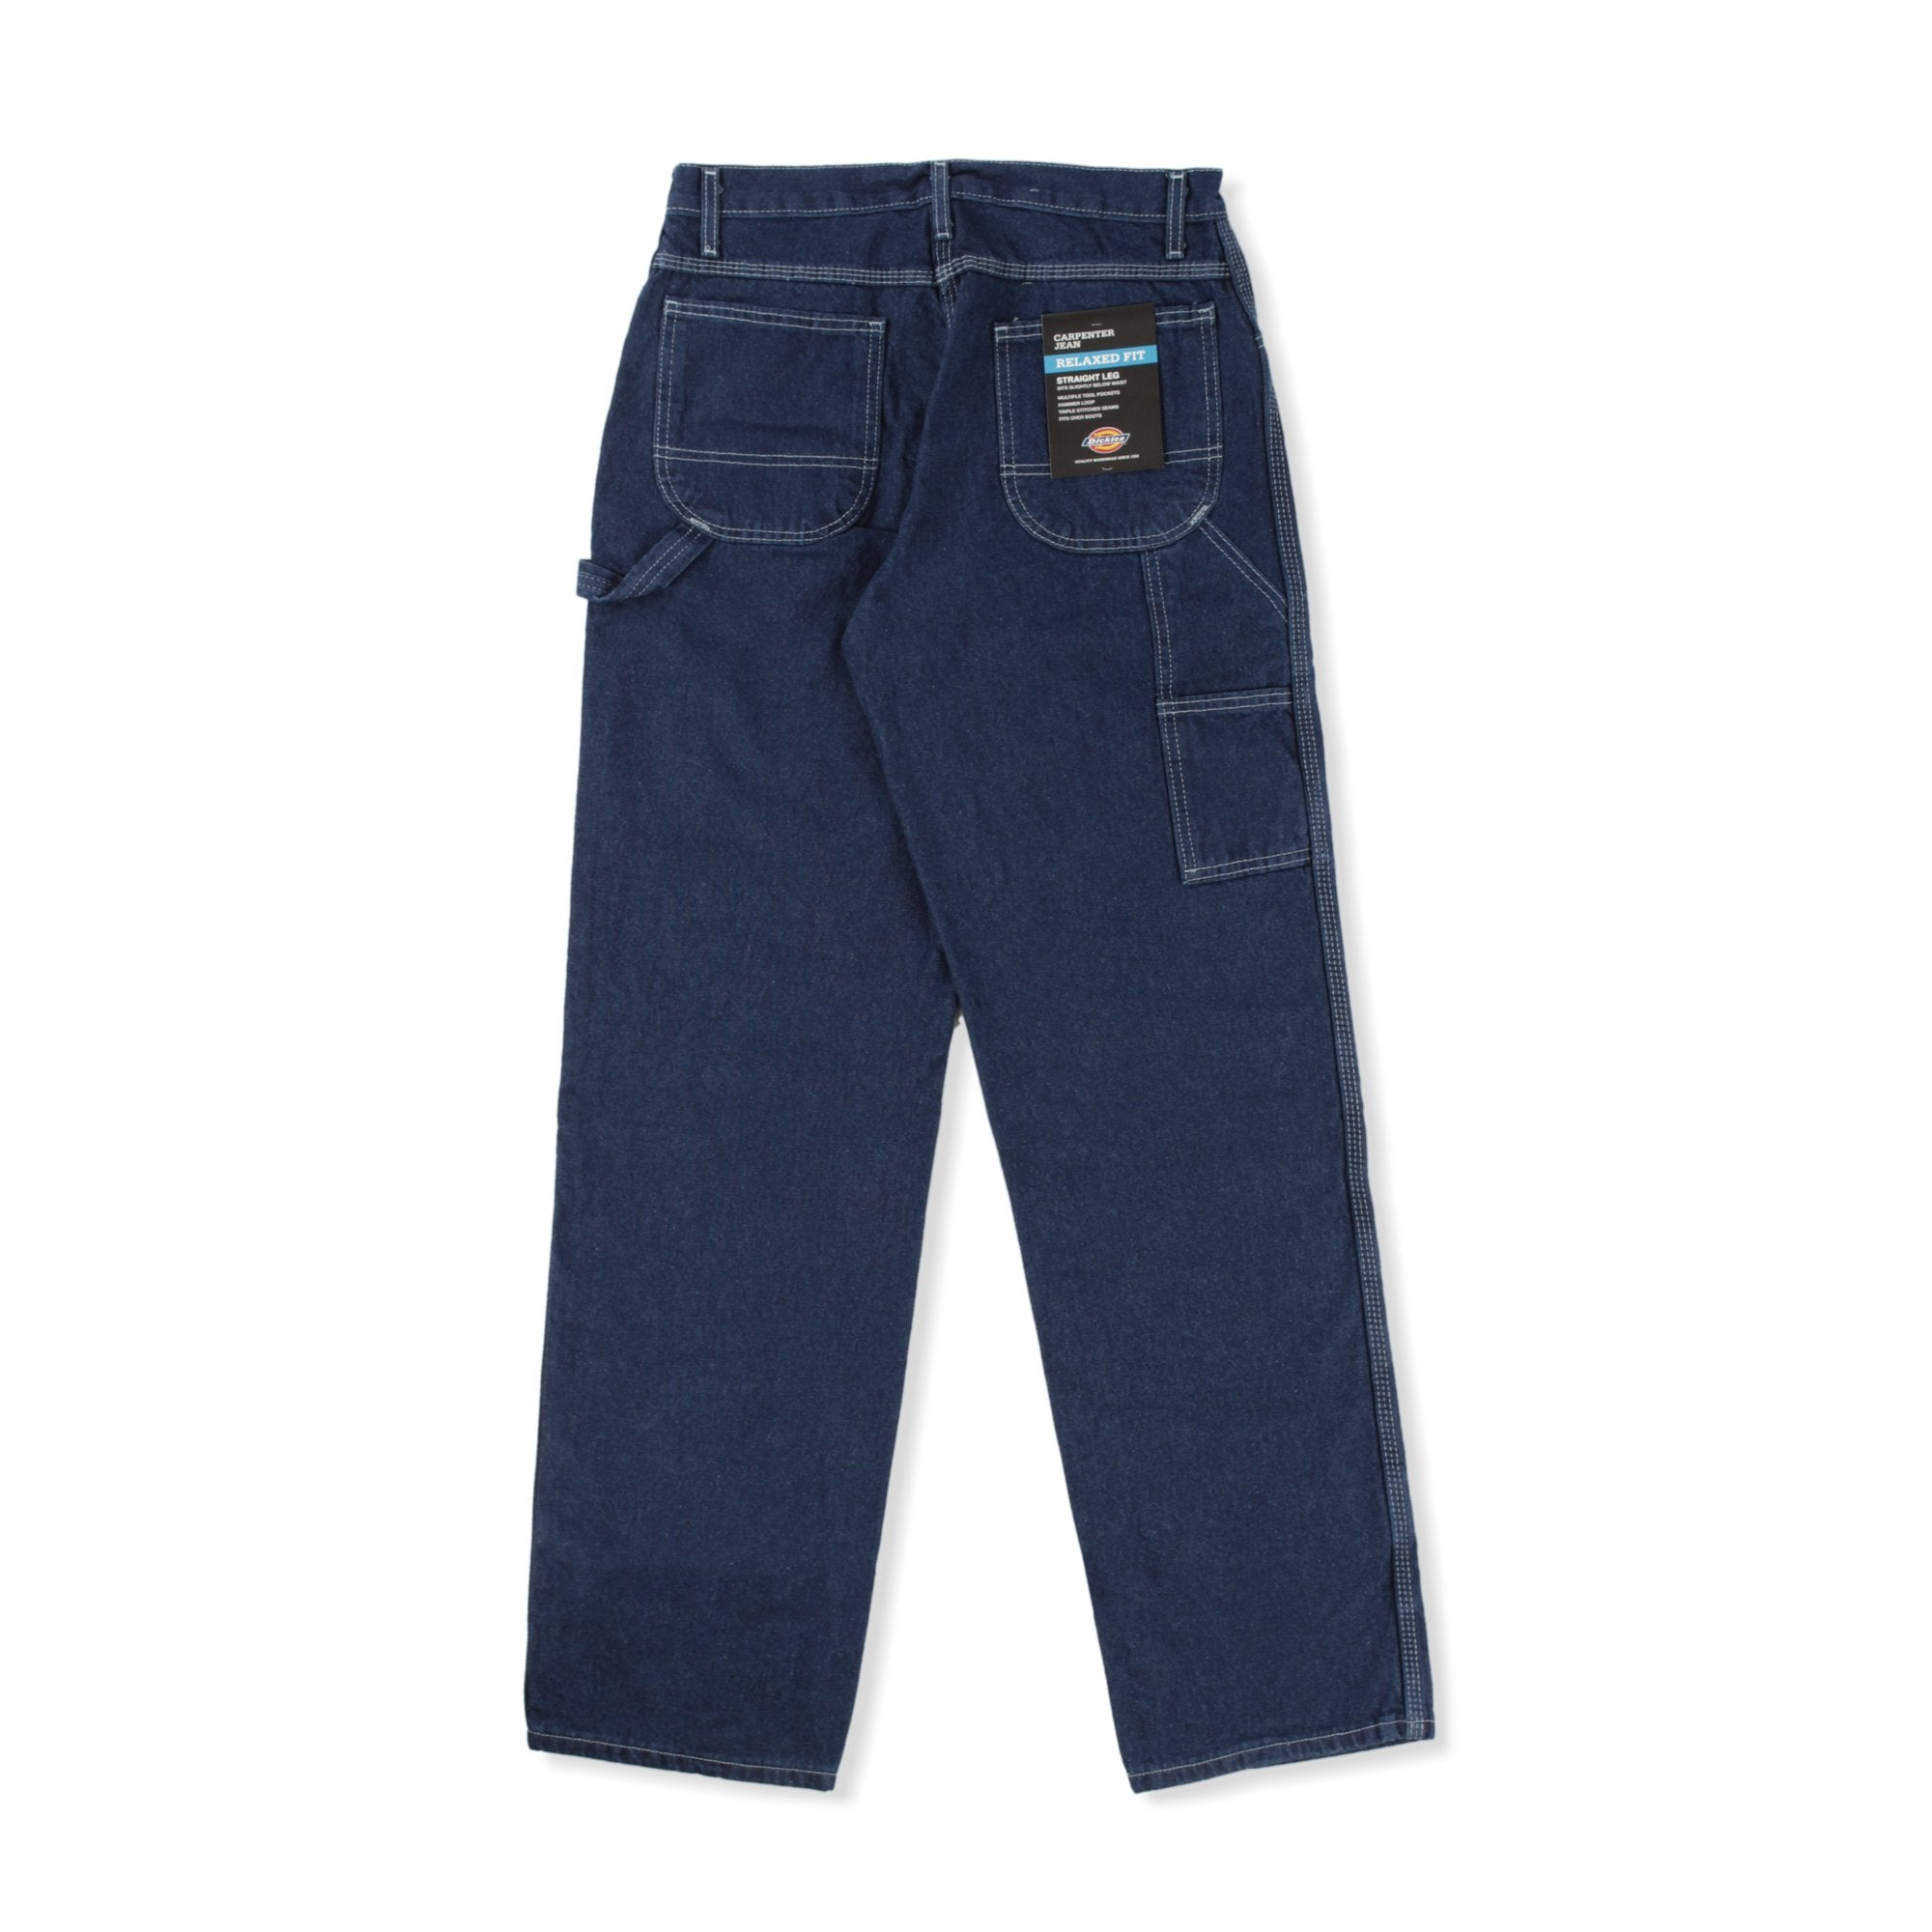 Dickies 1994 Pants Product Photo #2